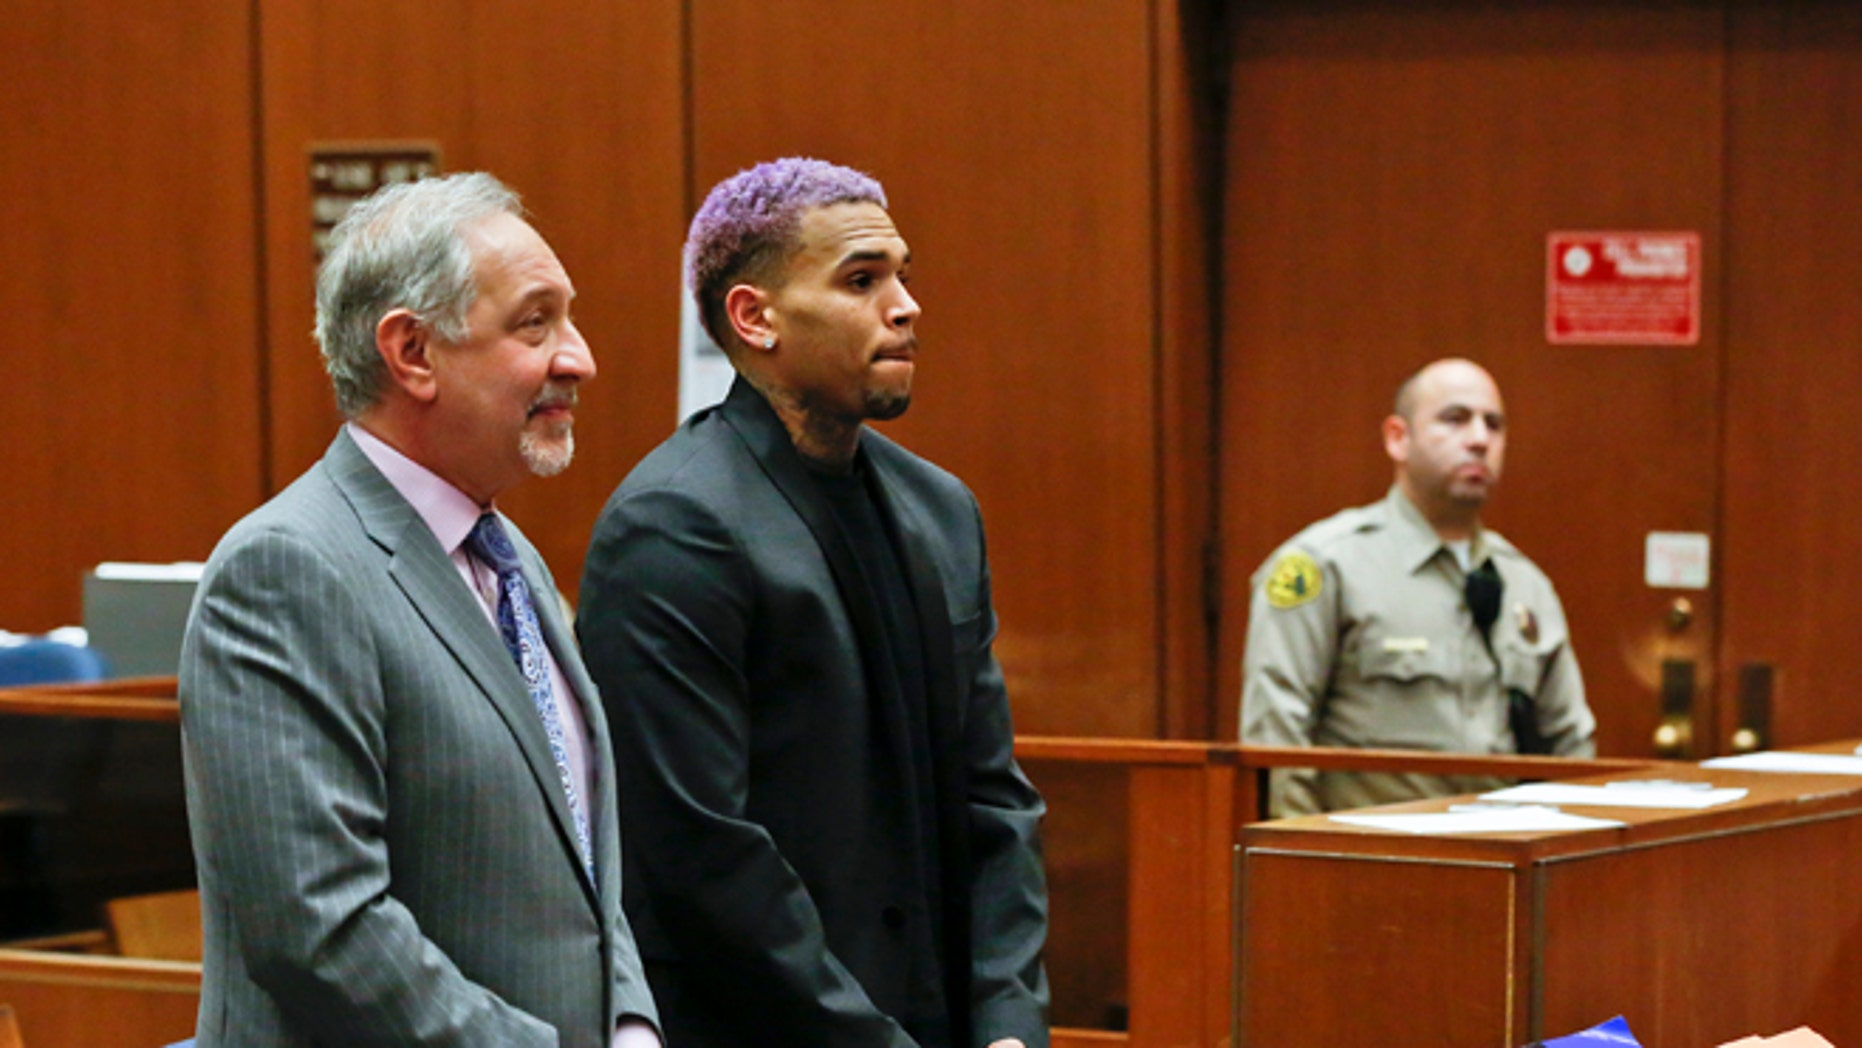 March 20, 2015. Chris Brown, right, appears with his attorney Mark Geragos, at a court hearing in the singer's long-running case over his 2009 attack on Rihanna in Los Angeles.